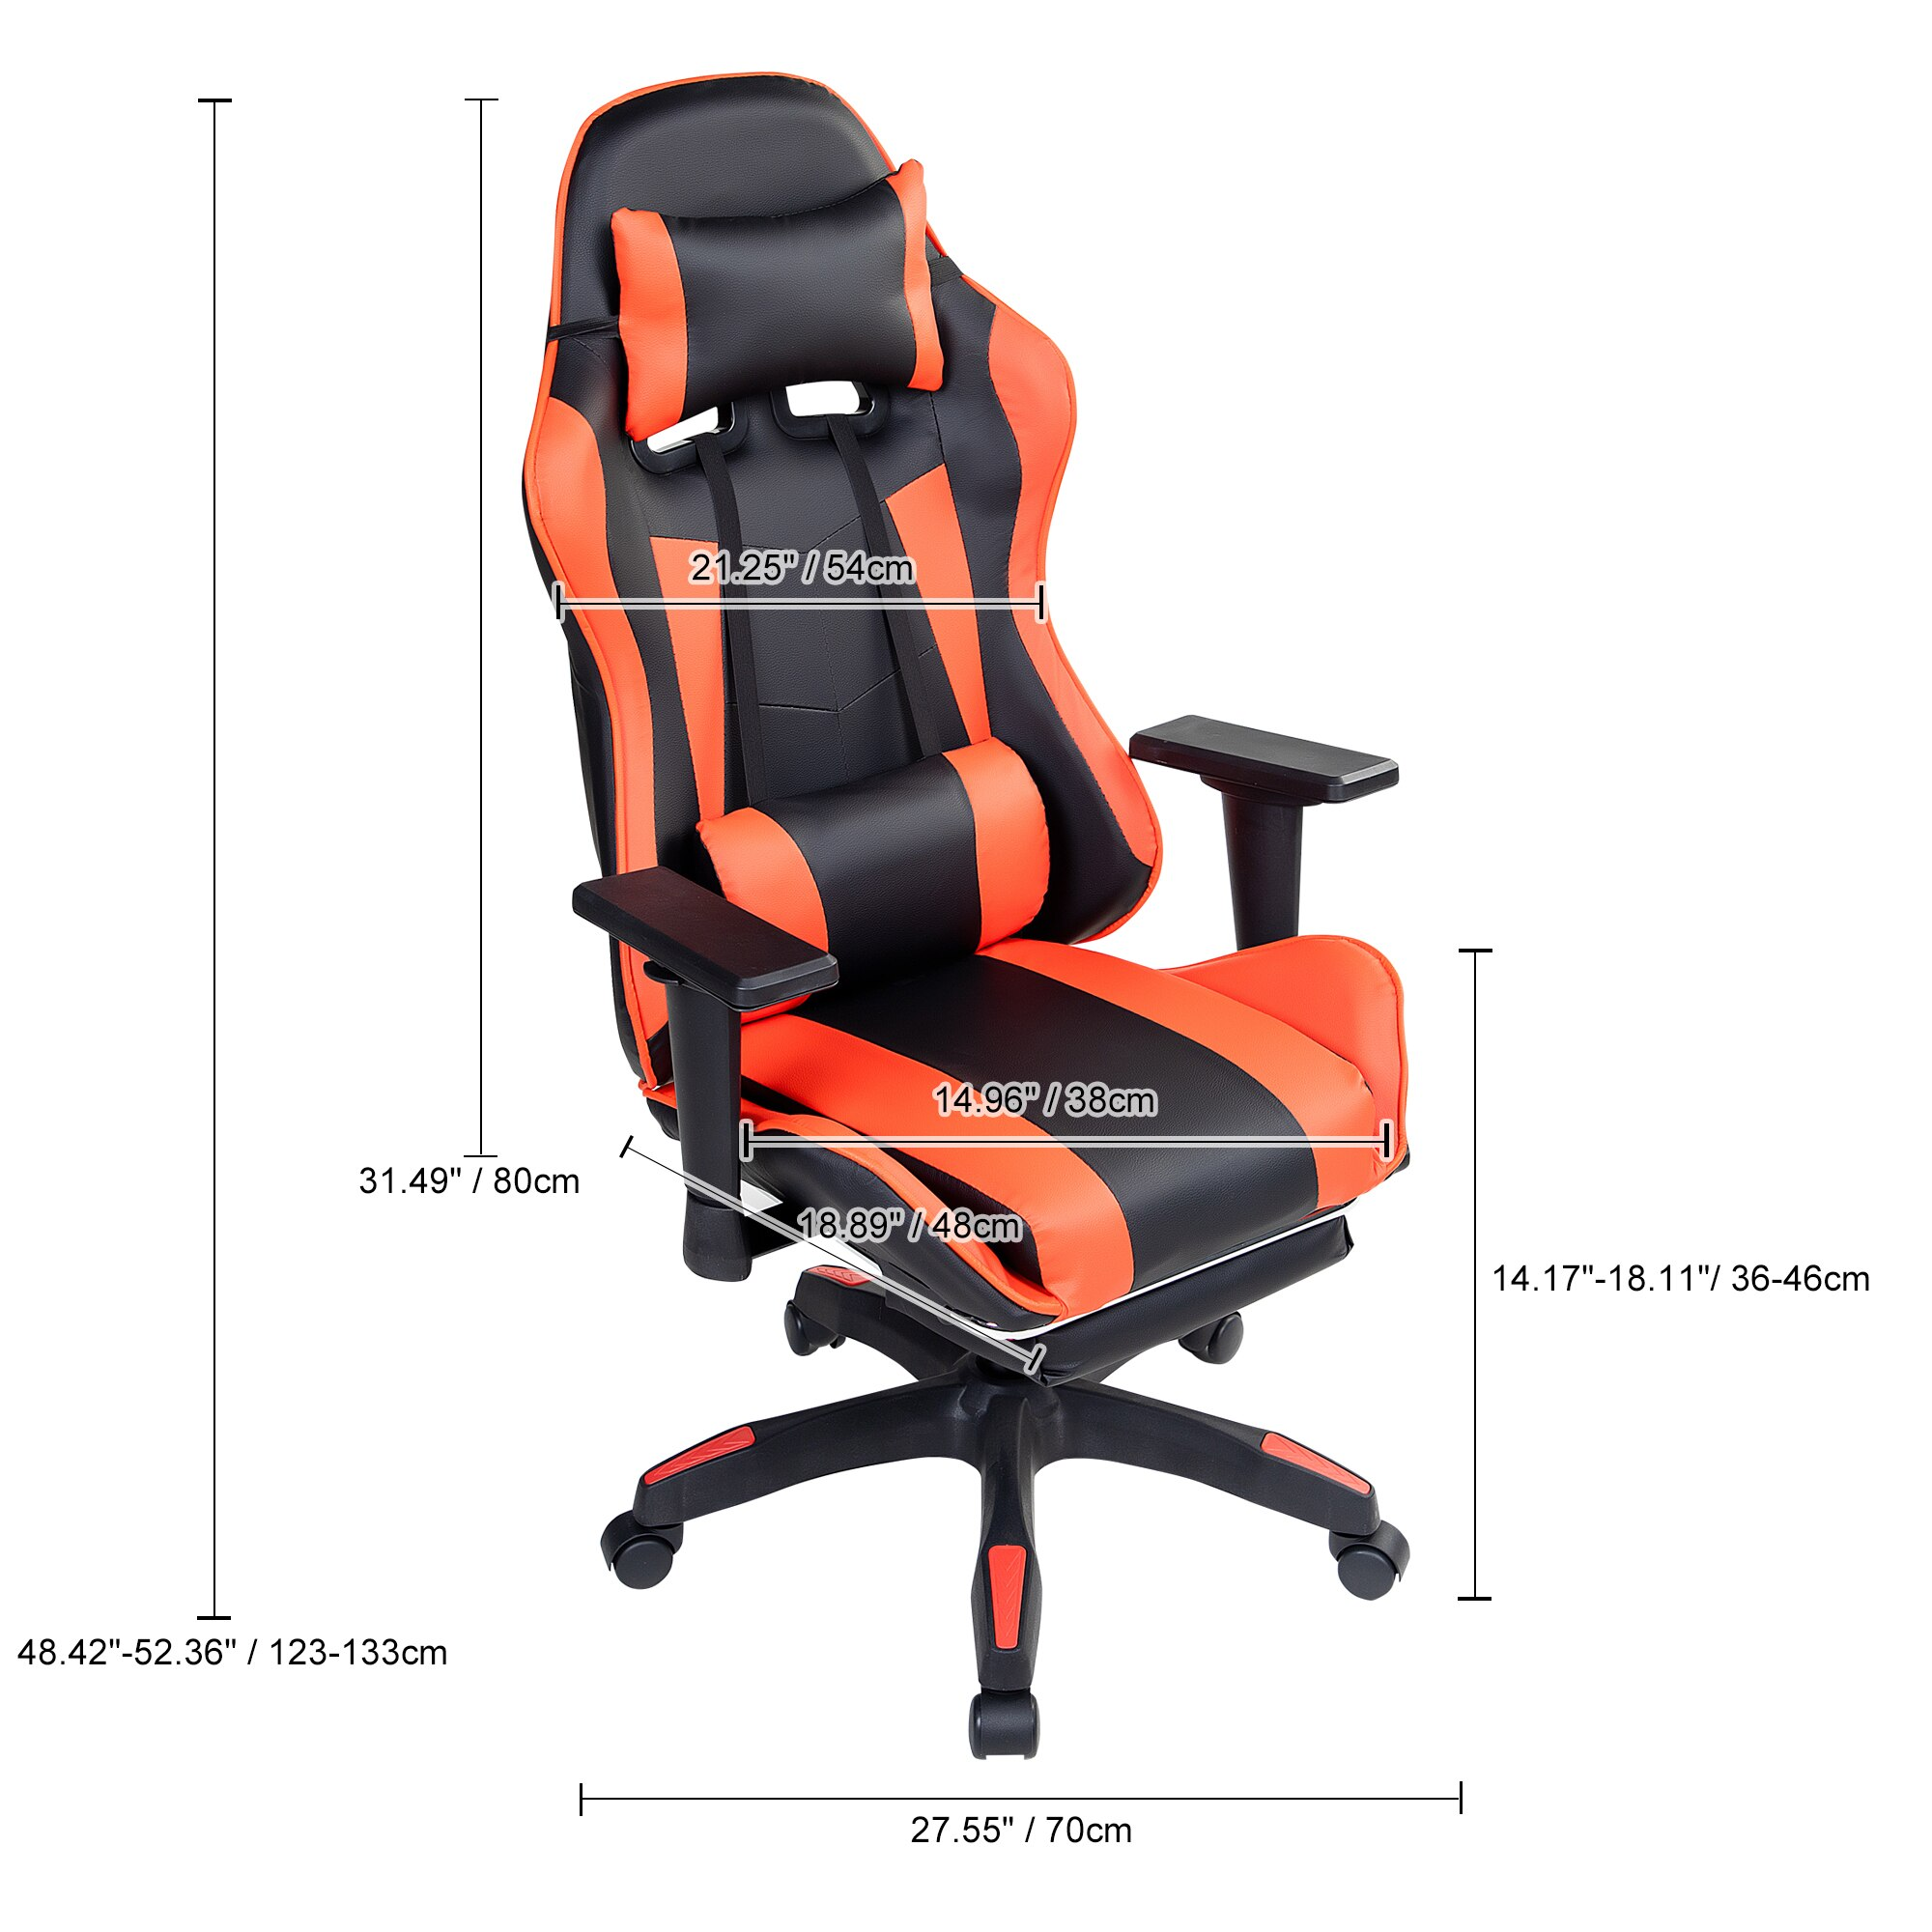 H0a8cd3592f244d34a21224c0a907719es - Computer Gaming Chair Safe And Durable Office Chair Ergonomic Leather Boss Chair Wcg Game Rotating Lift Chair High Back Chair